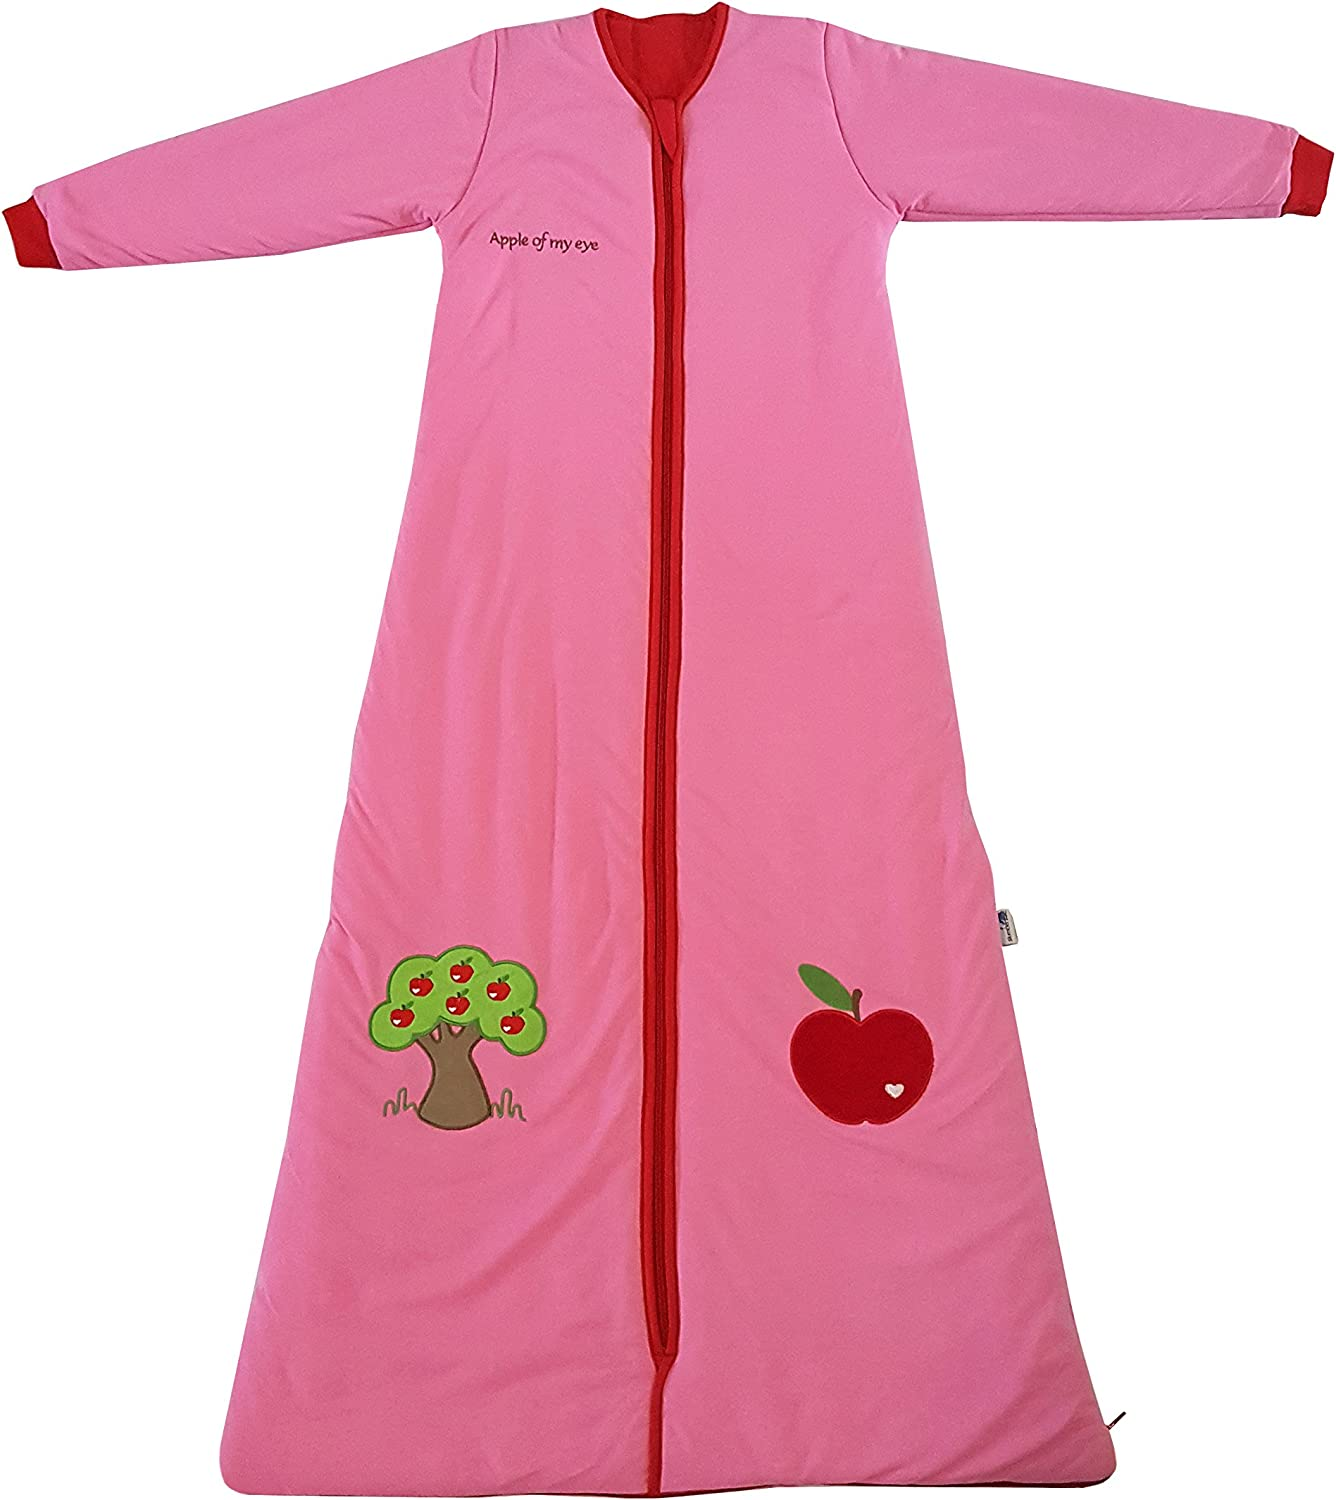 Slumbersac Sleeping Bag with Non Removable Long Sleeves 2.5 Tog-Red Apple 6-18 months//35 inch